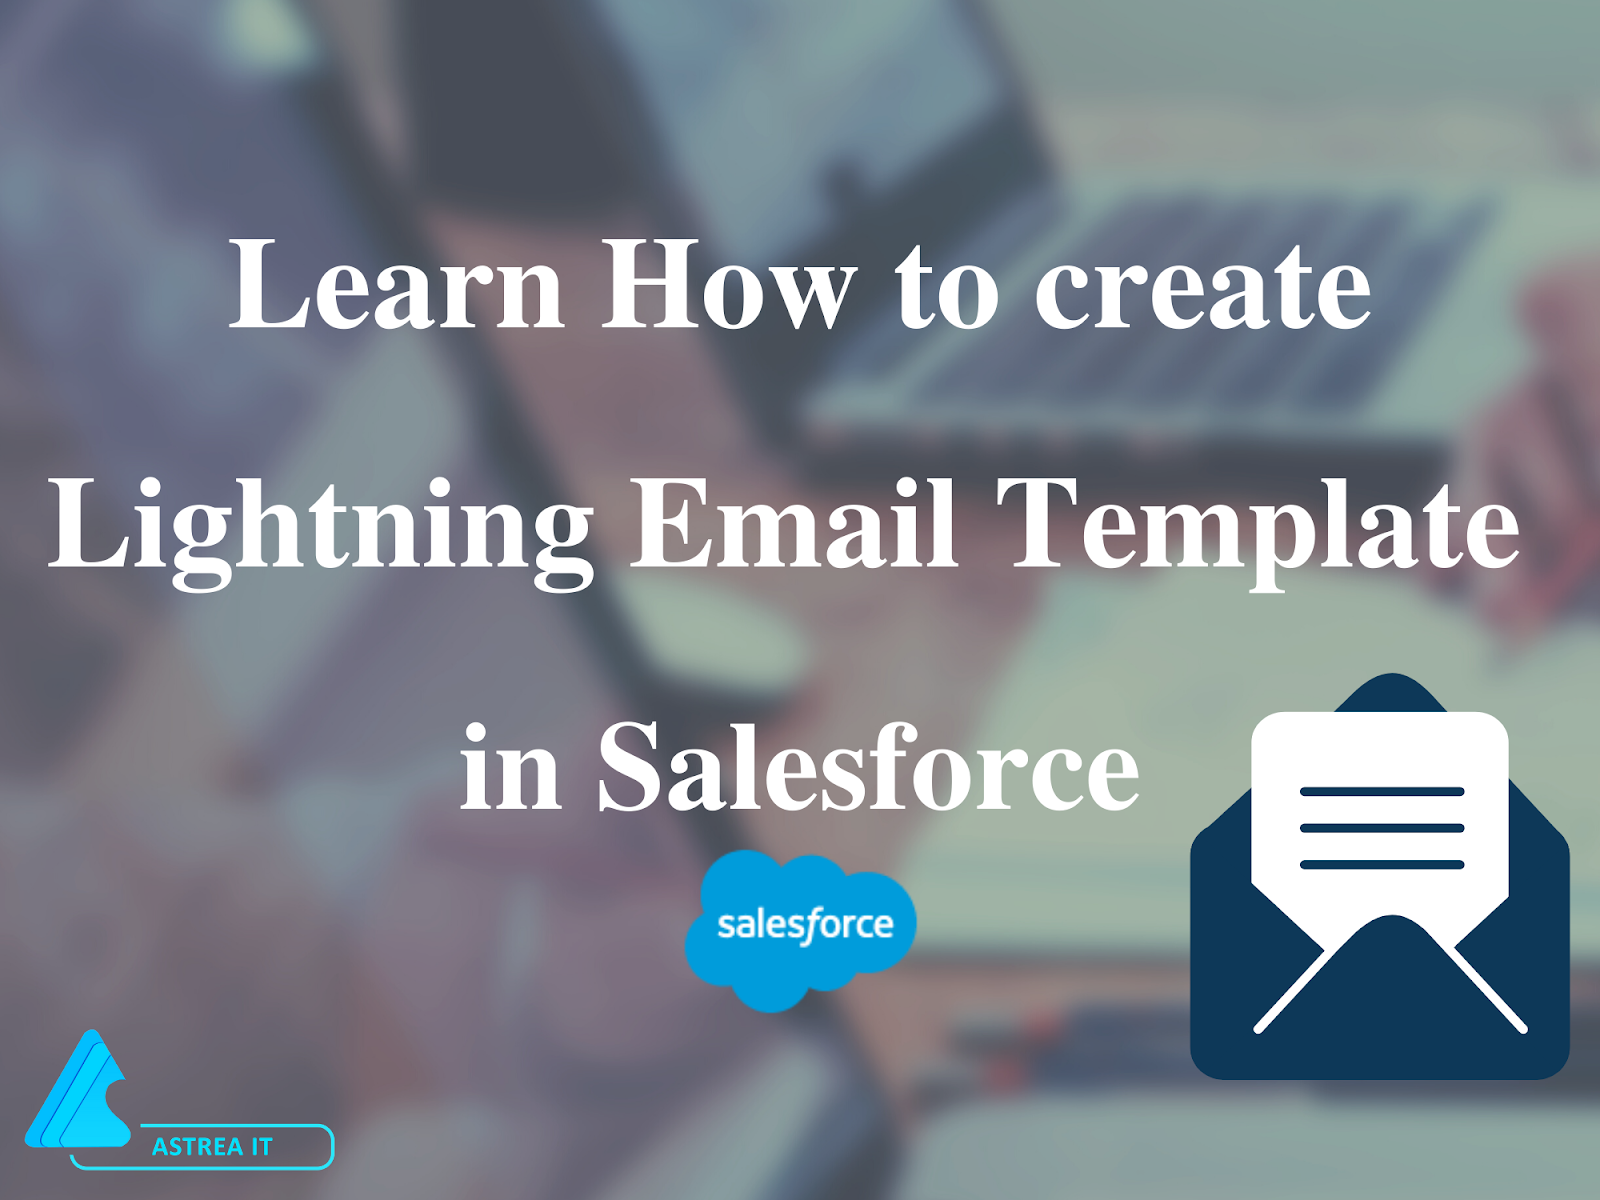 Create Lightning Email Templates In Salesforce